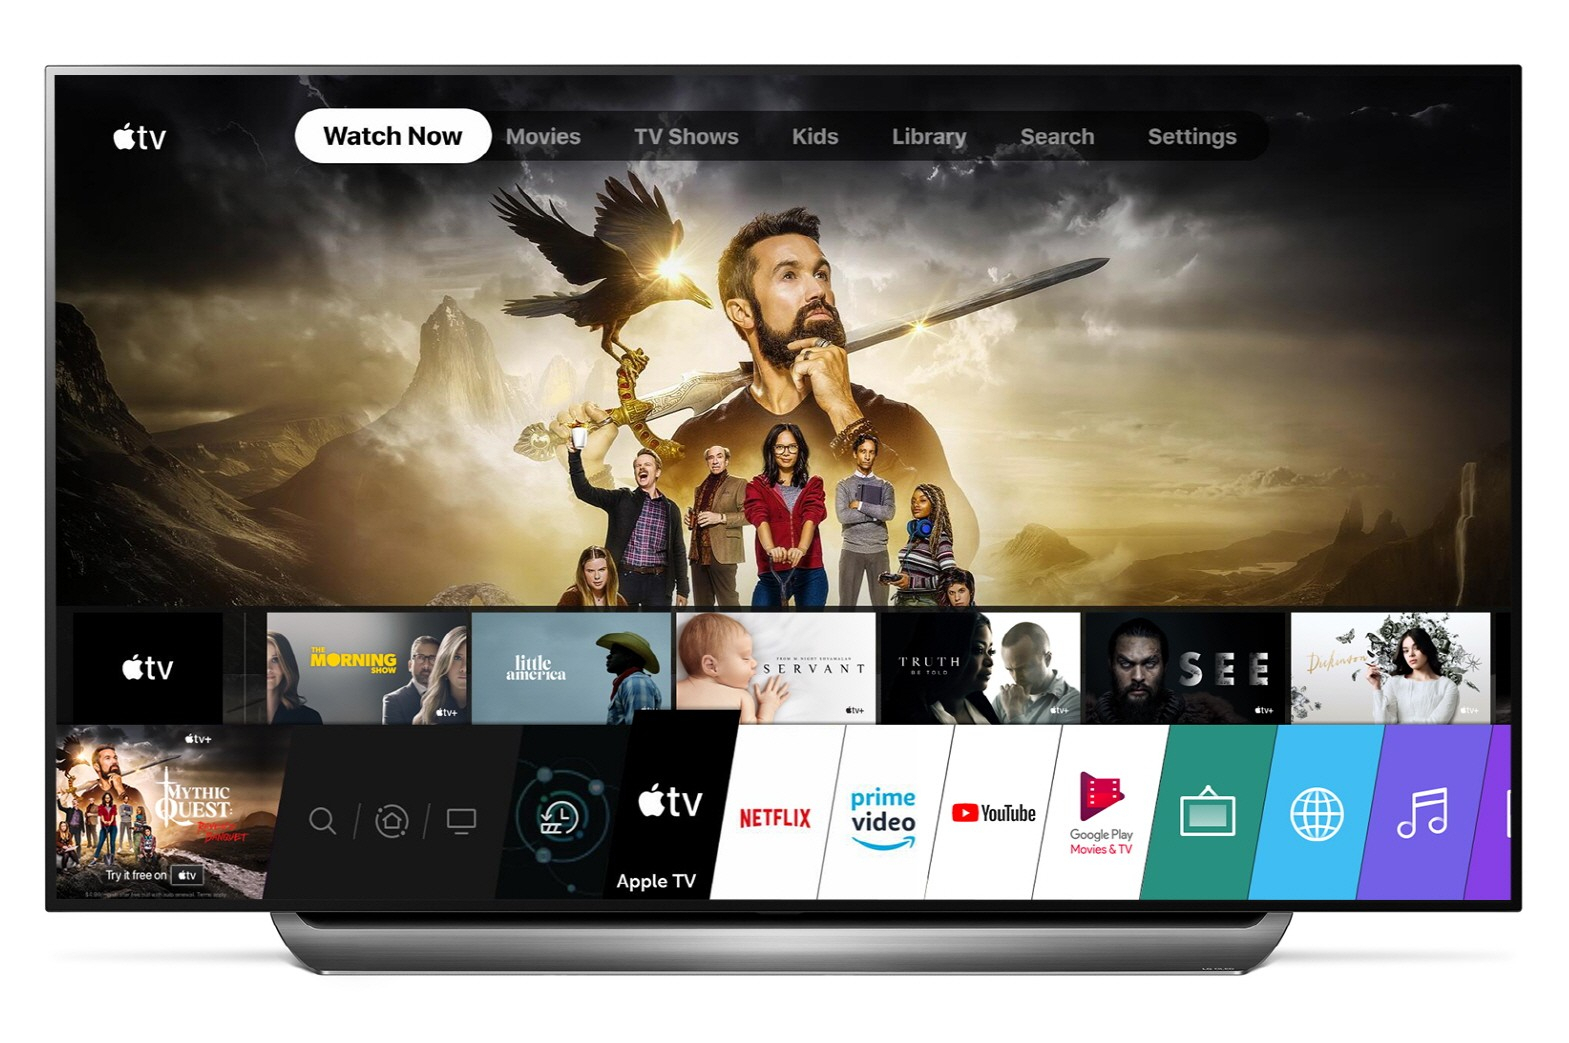 Apple TV App Now on 2019 LG TVs 011